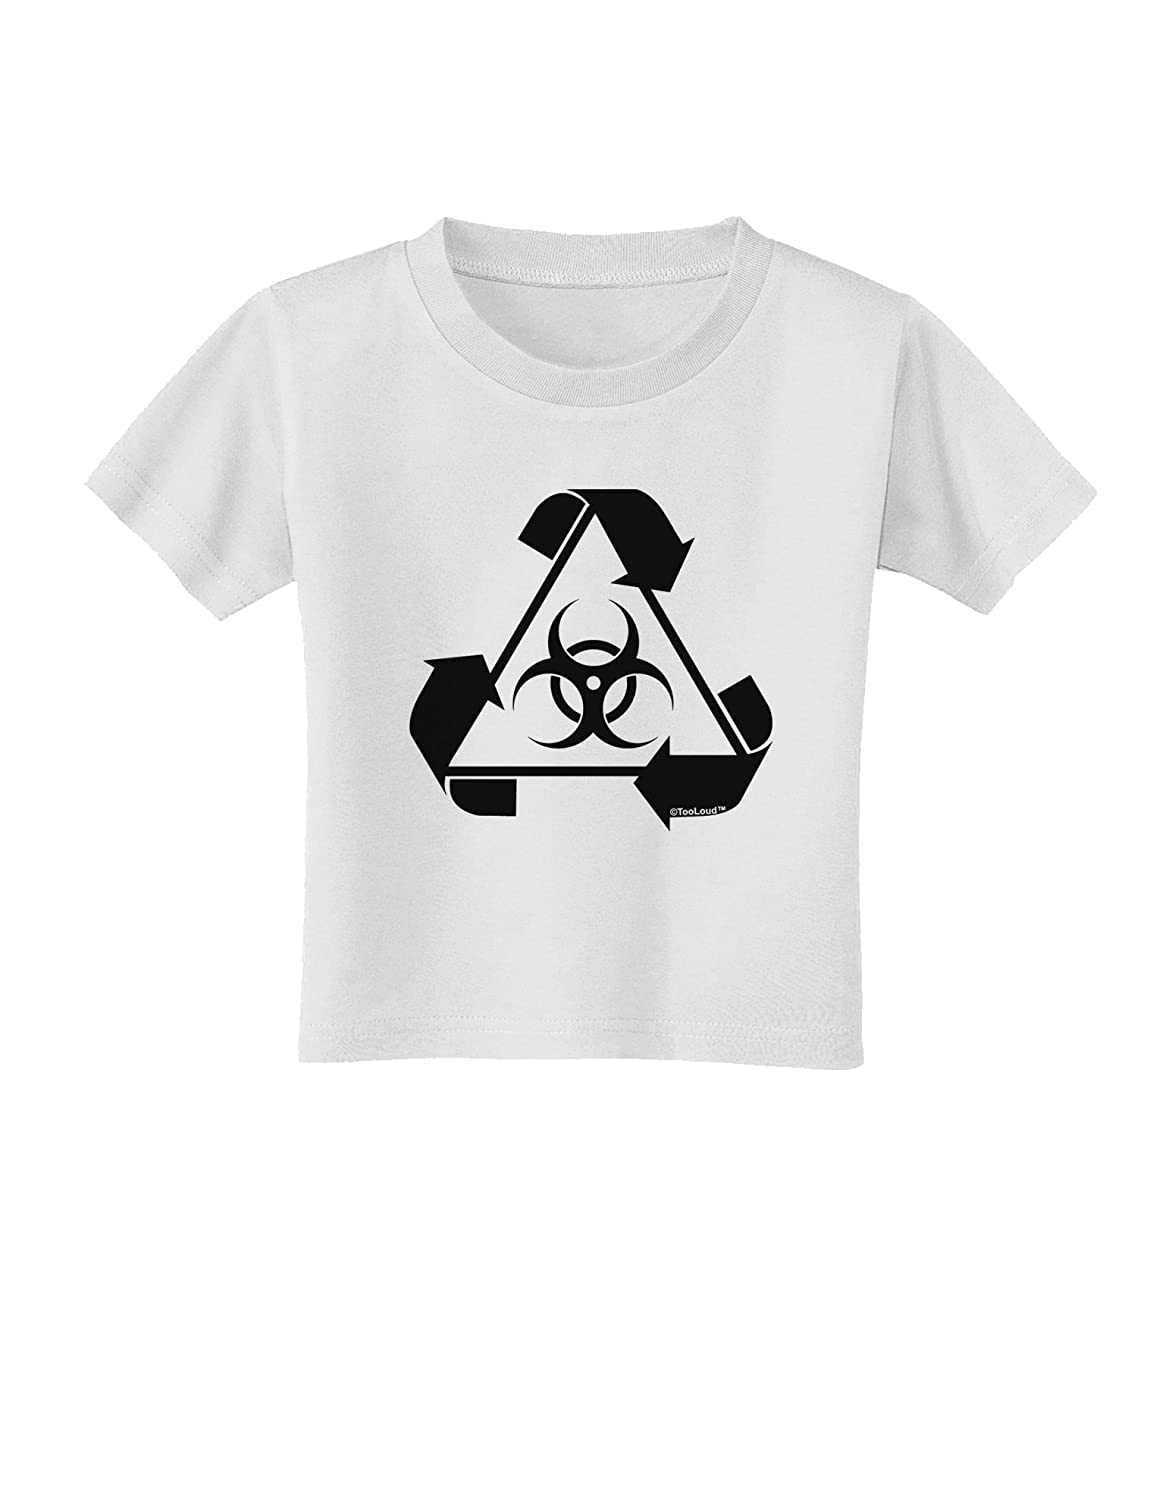 TooLoud Recycle Biohazard Sign Black and White Toddler T-Shirt